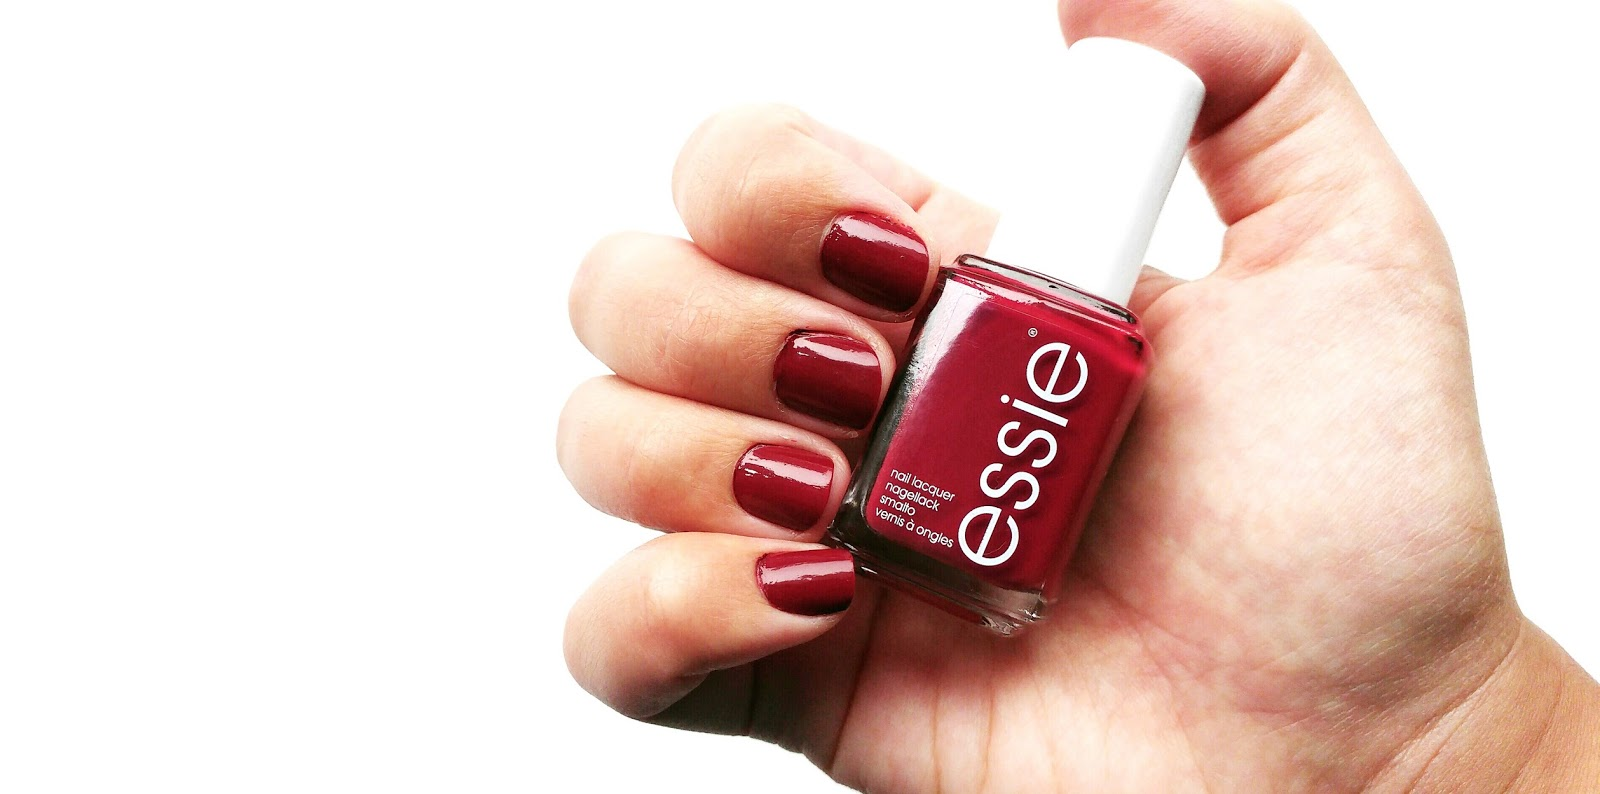 Essie Winter Collection 2016 Swatched and Reviewed, Essie Shall We Chalet